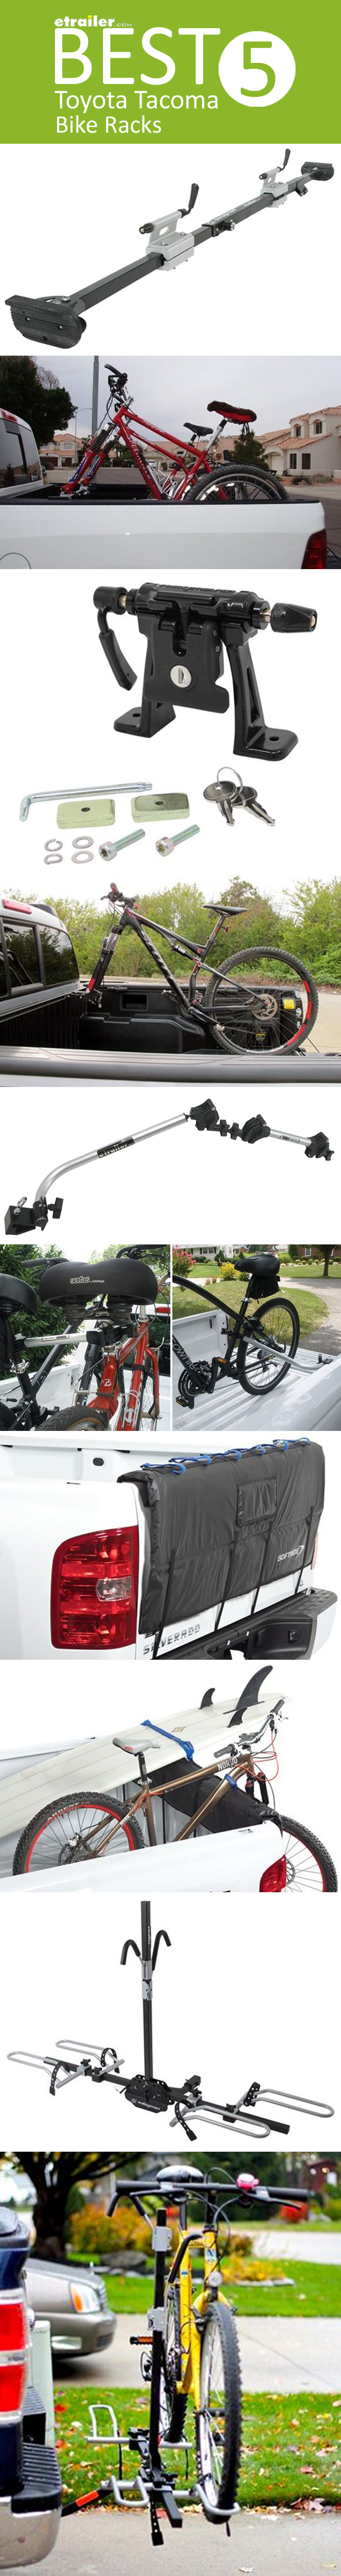 BEST 5 Toyota Bike Racks! Truck bed, tailgate and